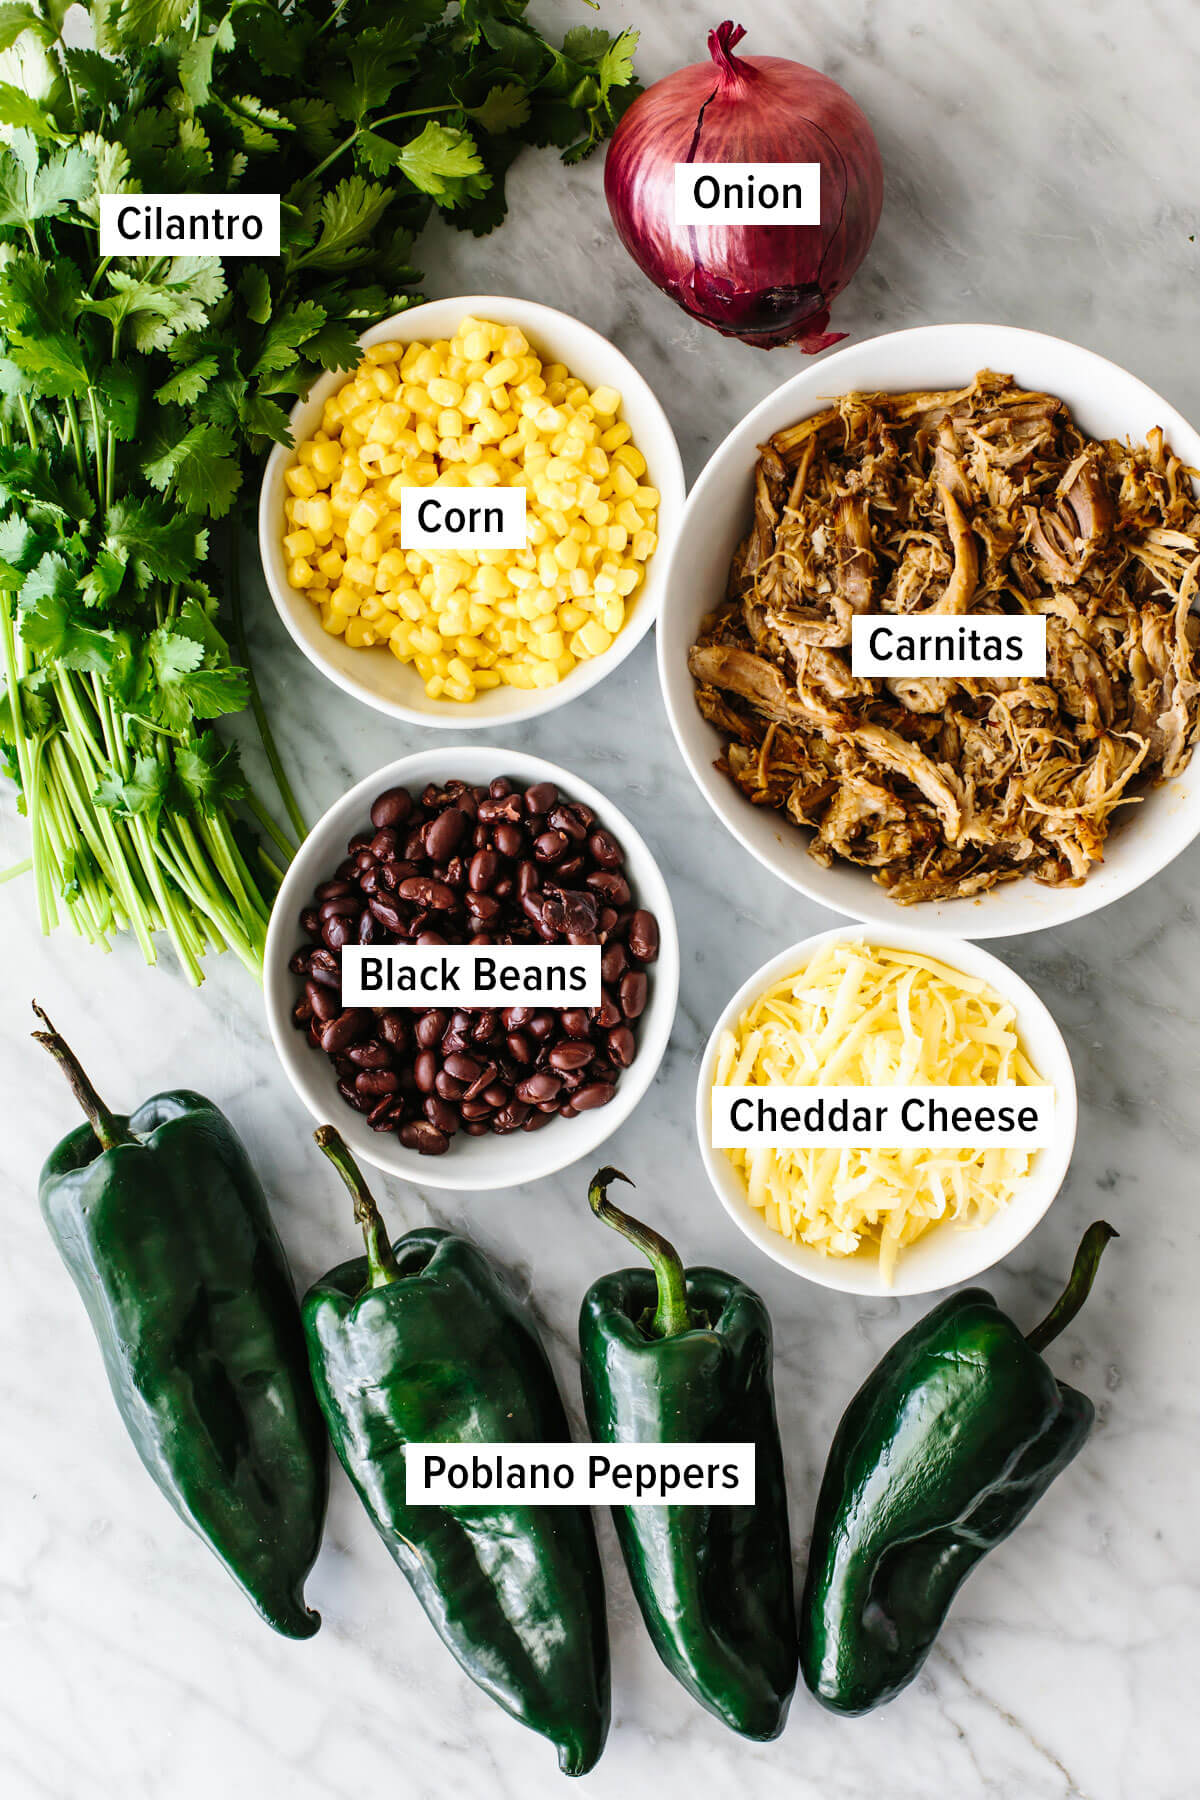 Ingredients for carnitas stuffed poblano peppers on a table.